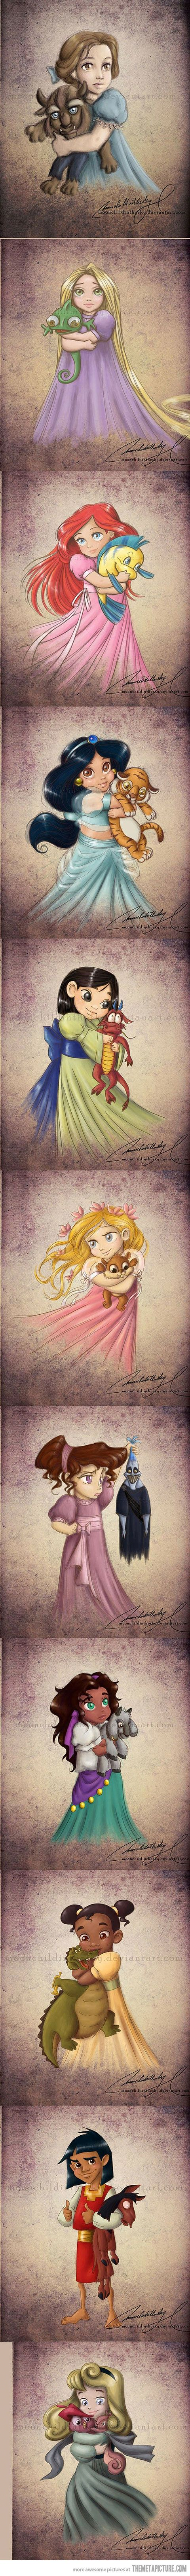 This is supposed to be princesses and their pets, but I find it humorous that a prince is in this. So cute